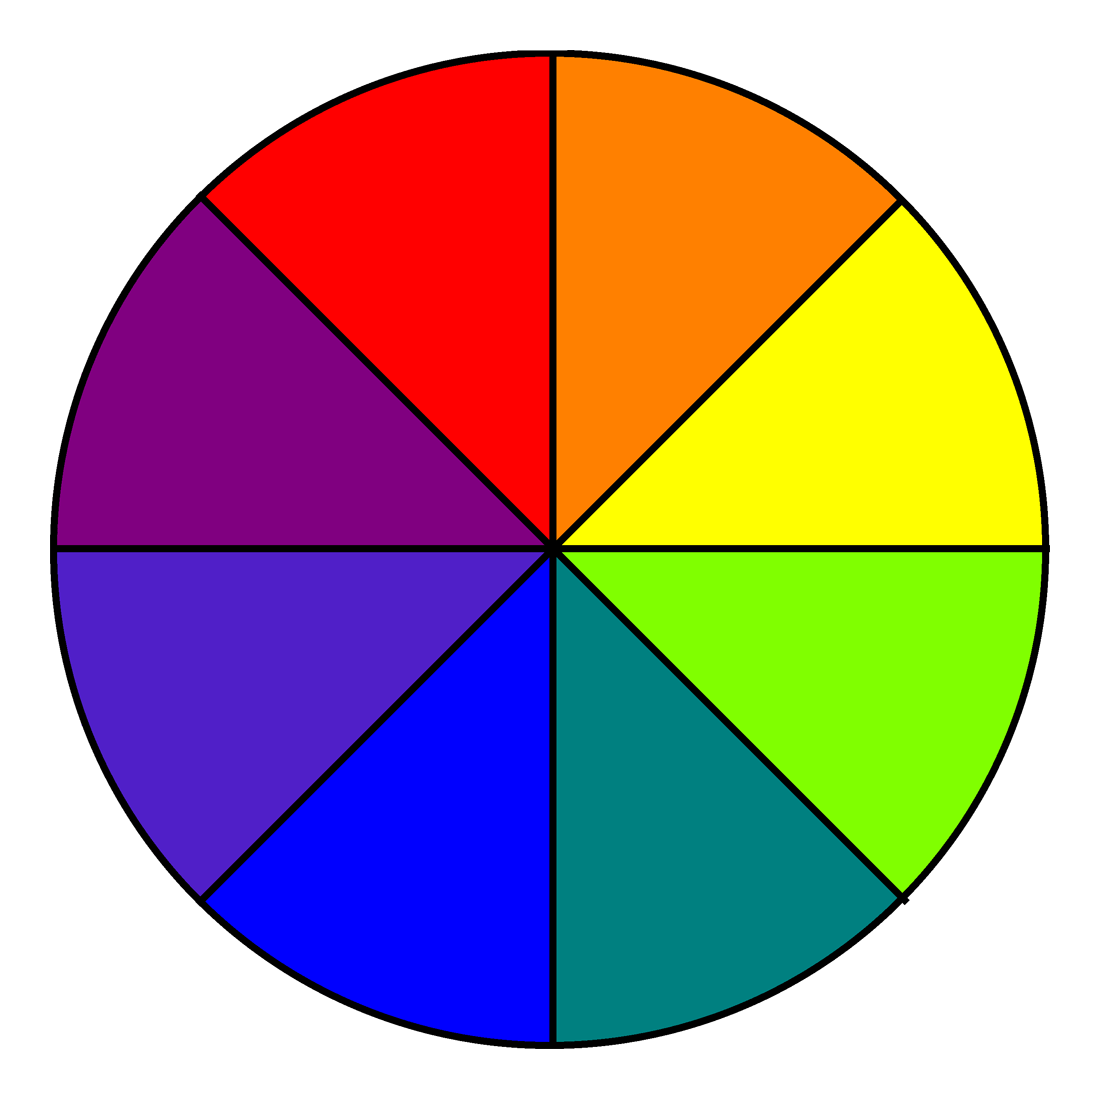 10 Tips For Improving Your Use Of Color In Your